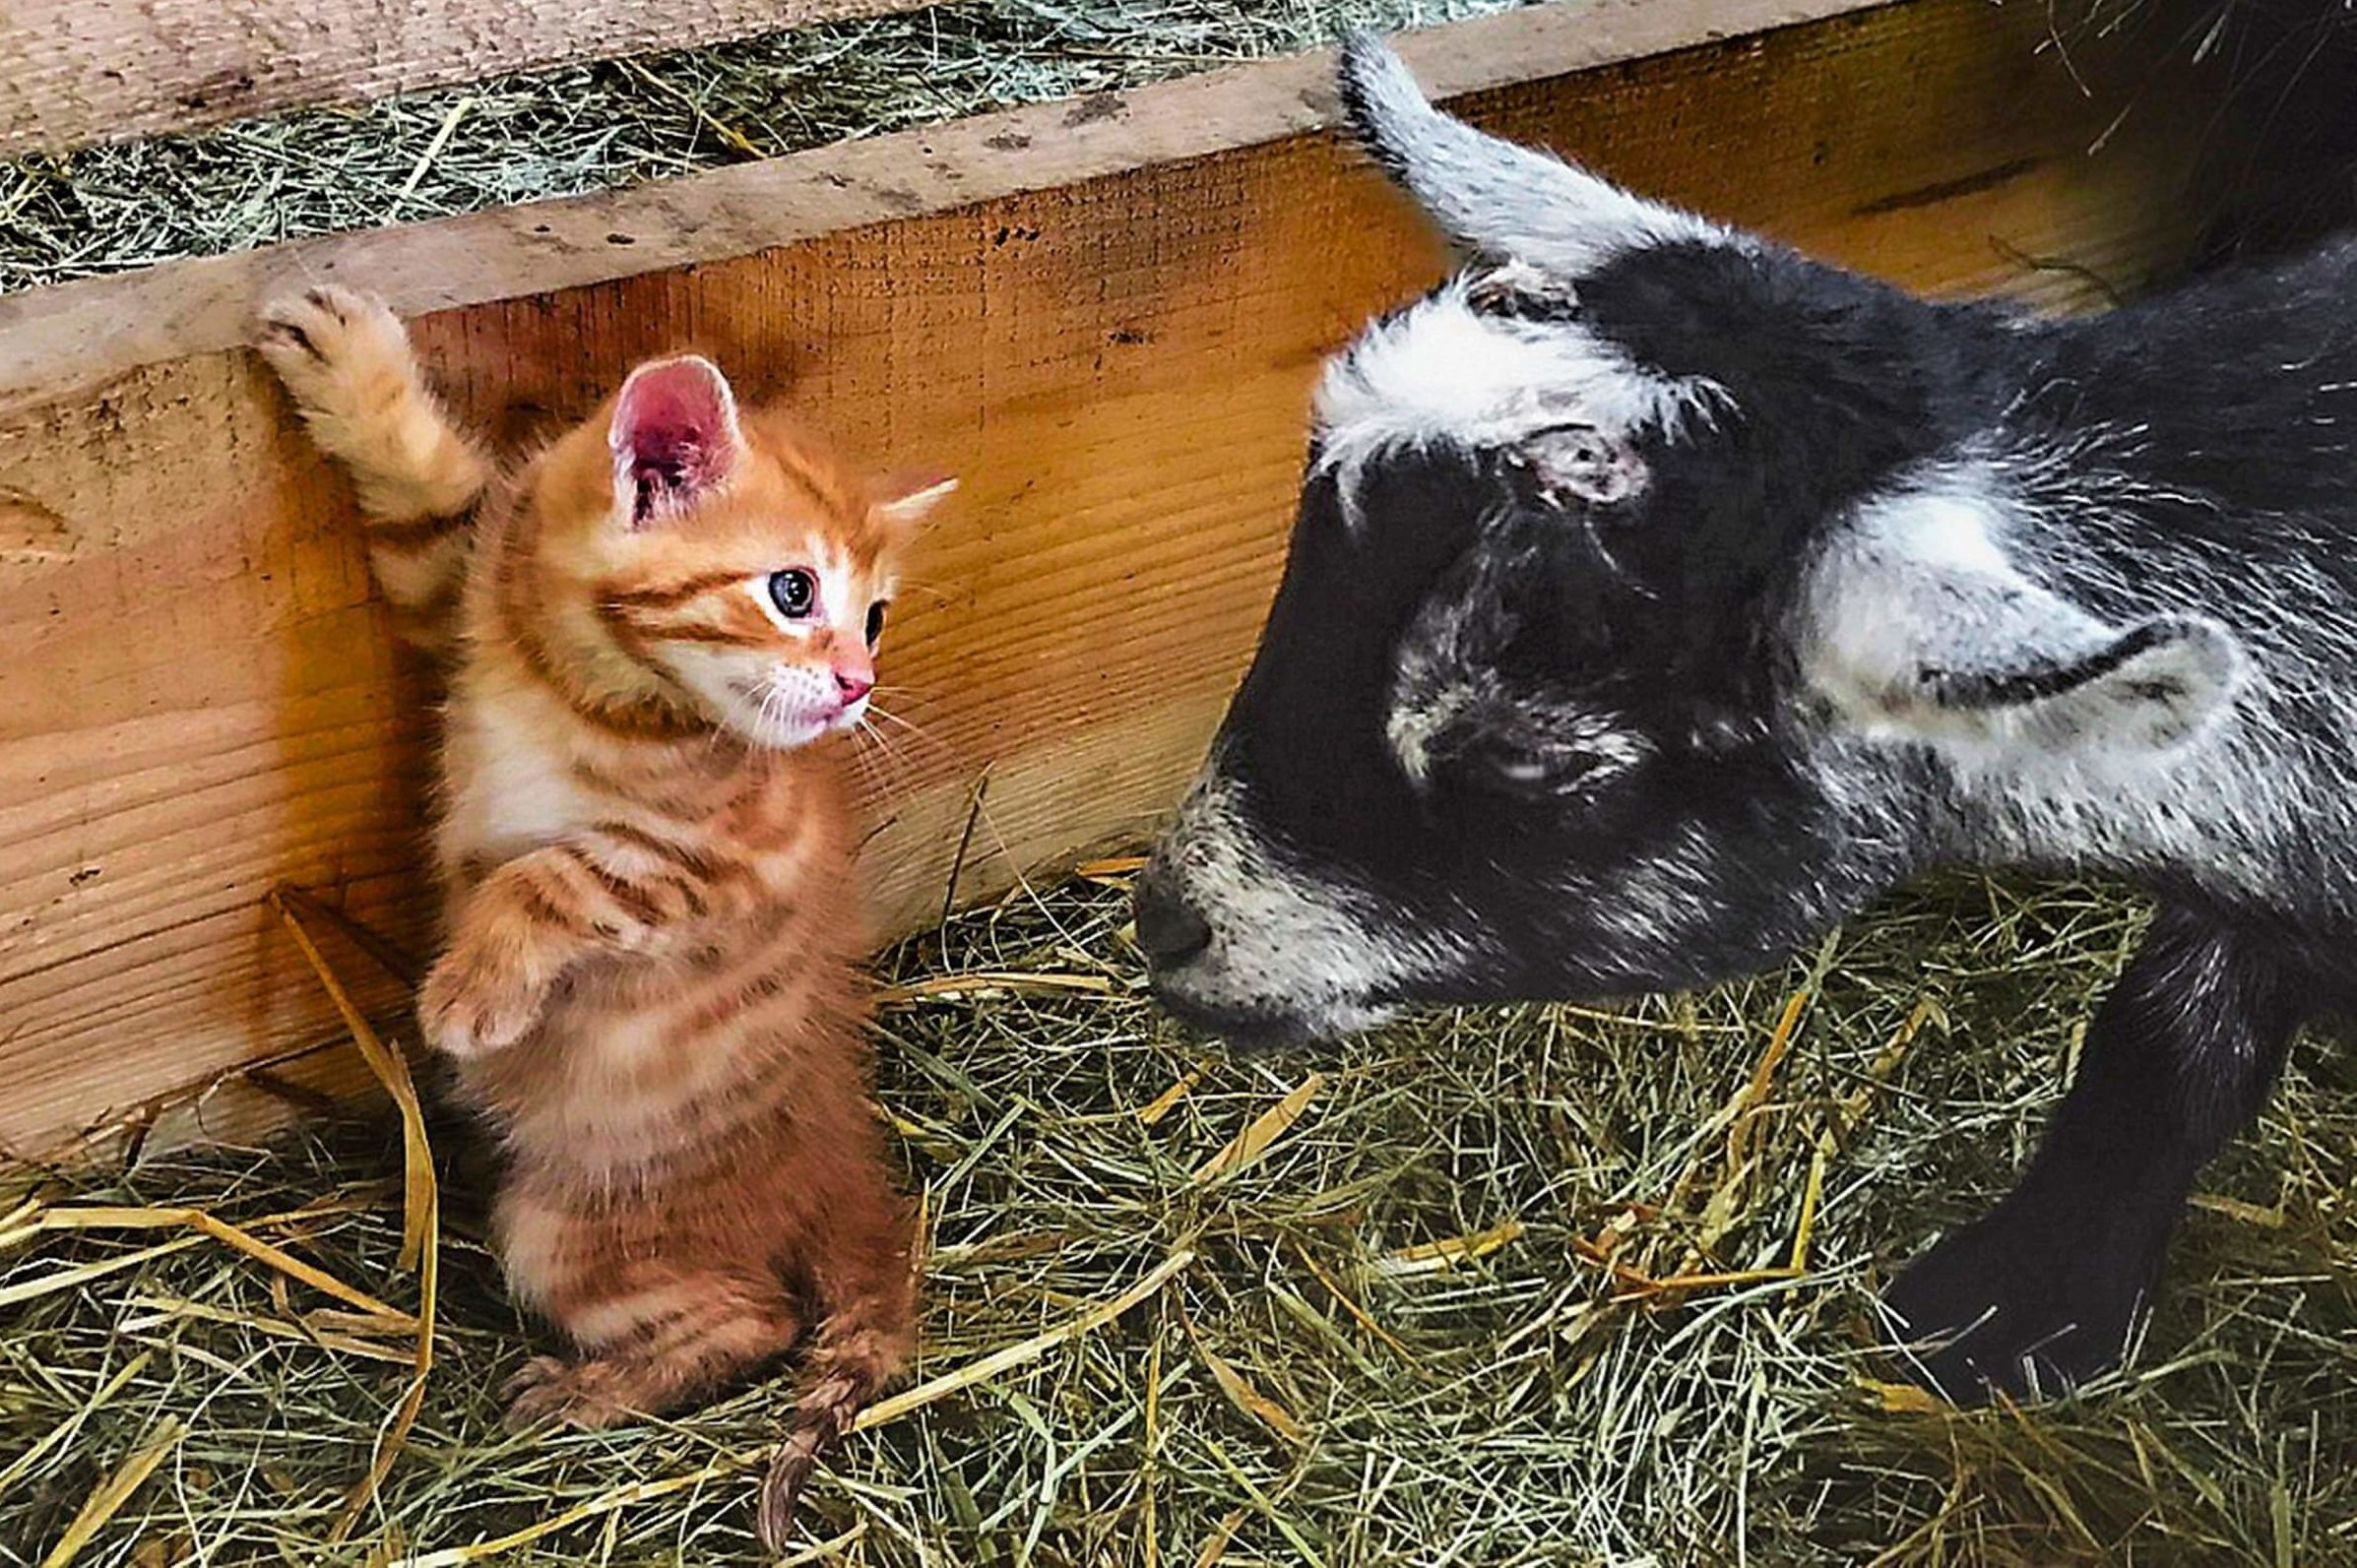 orange kitten and black and white goat eye each other closely